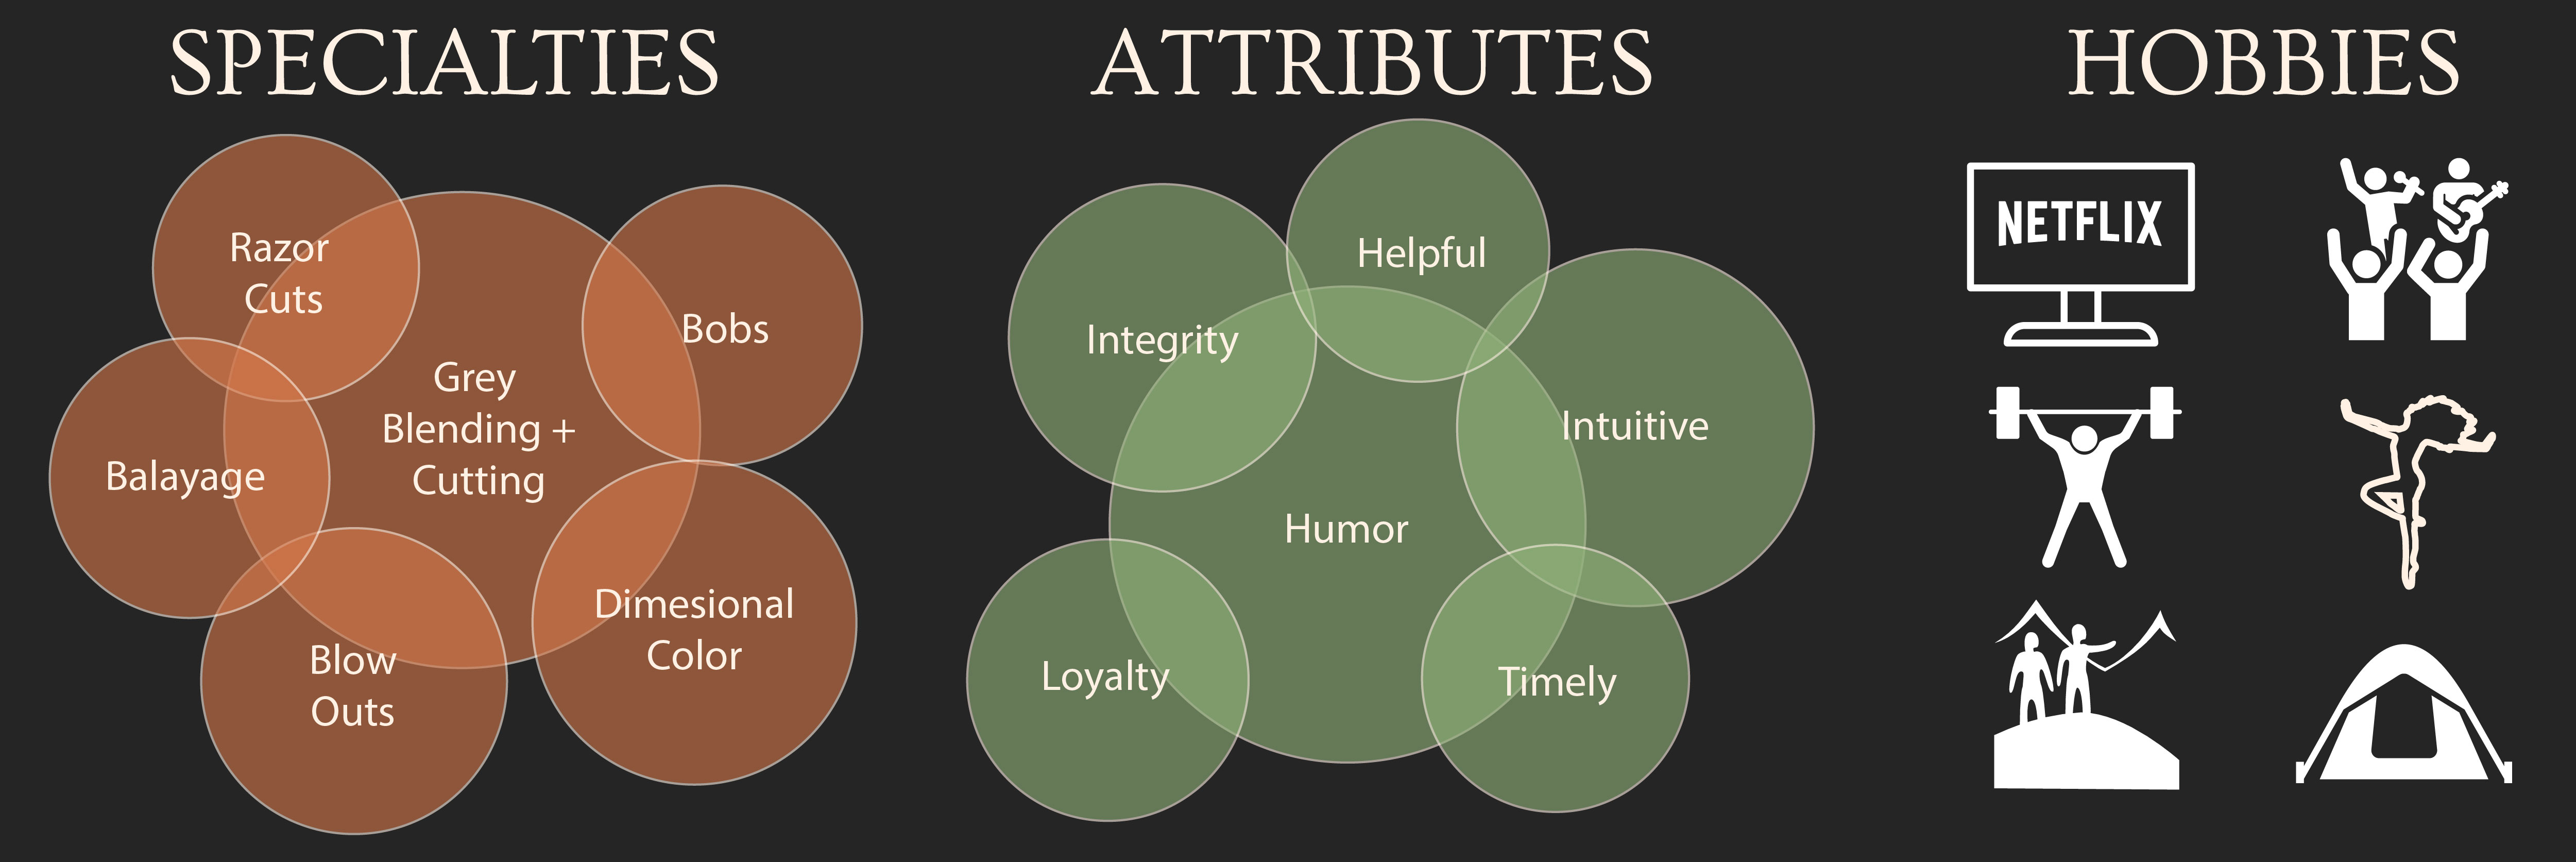 Kimberly's infograph specialties, attributes, and hobbies